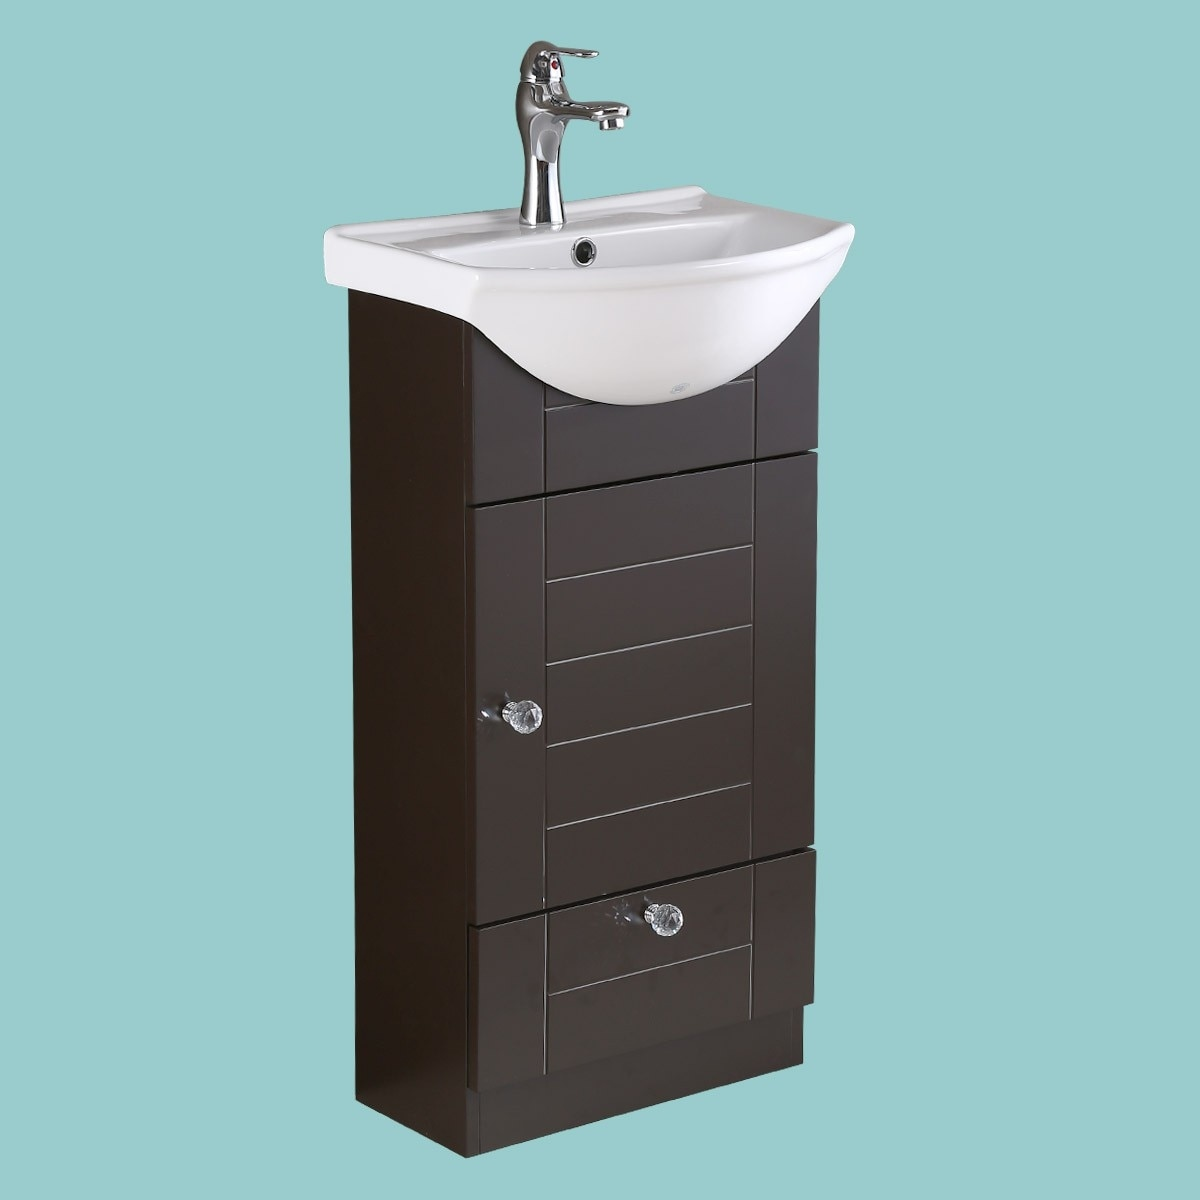 Shop Small Vanity Sink For Bathroom White, Dark Oak Cabinet, Faucet ...